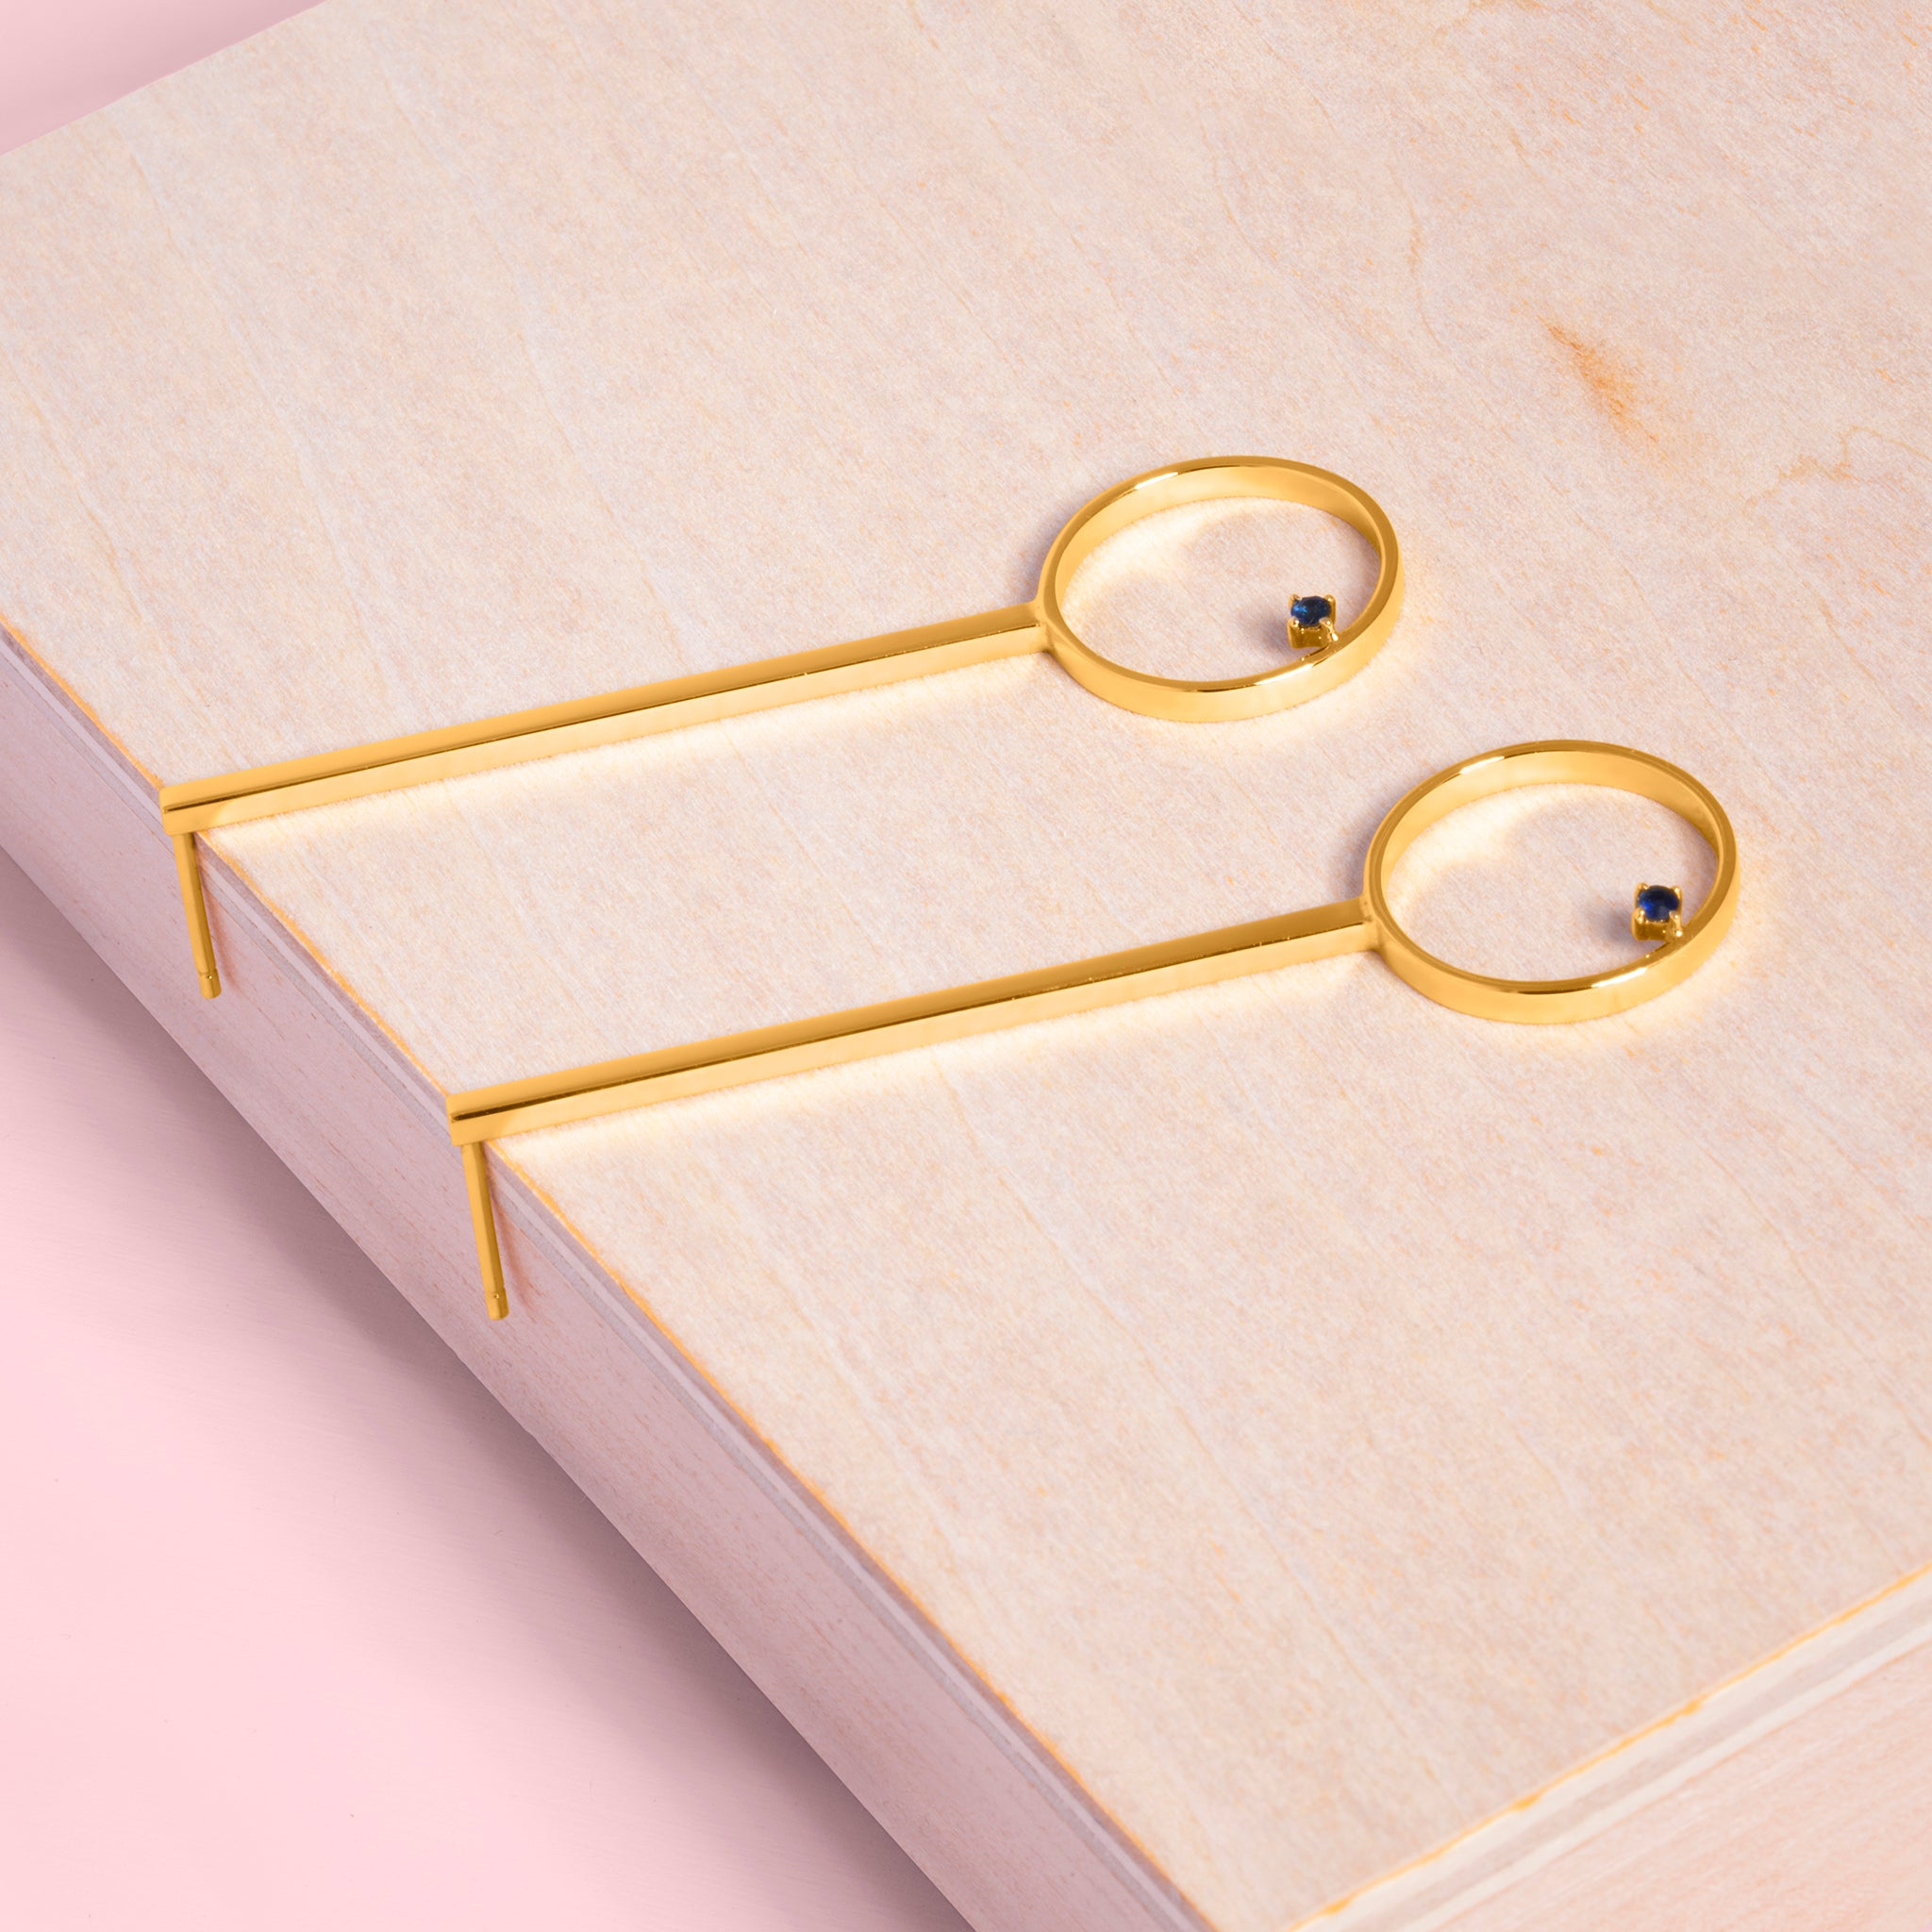 Republic Road Illuminate | The Speck Earrings Gold on Wood